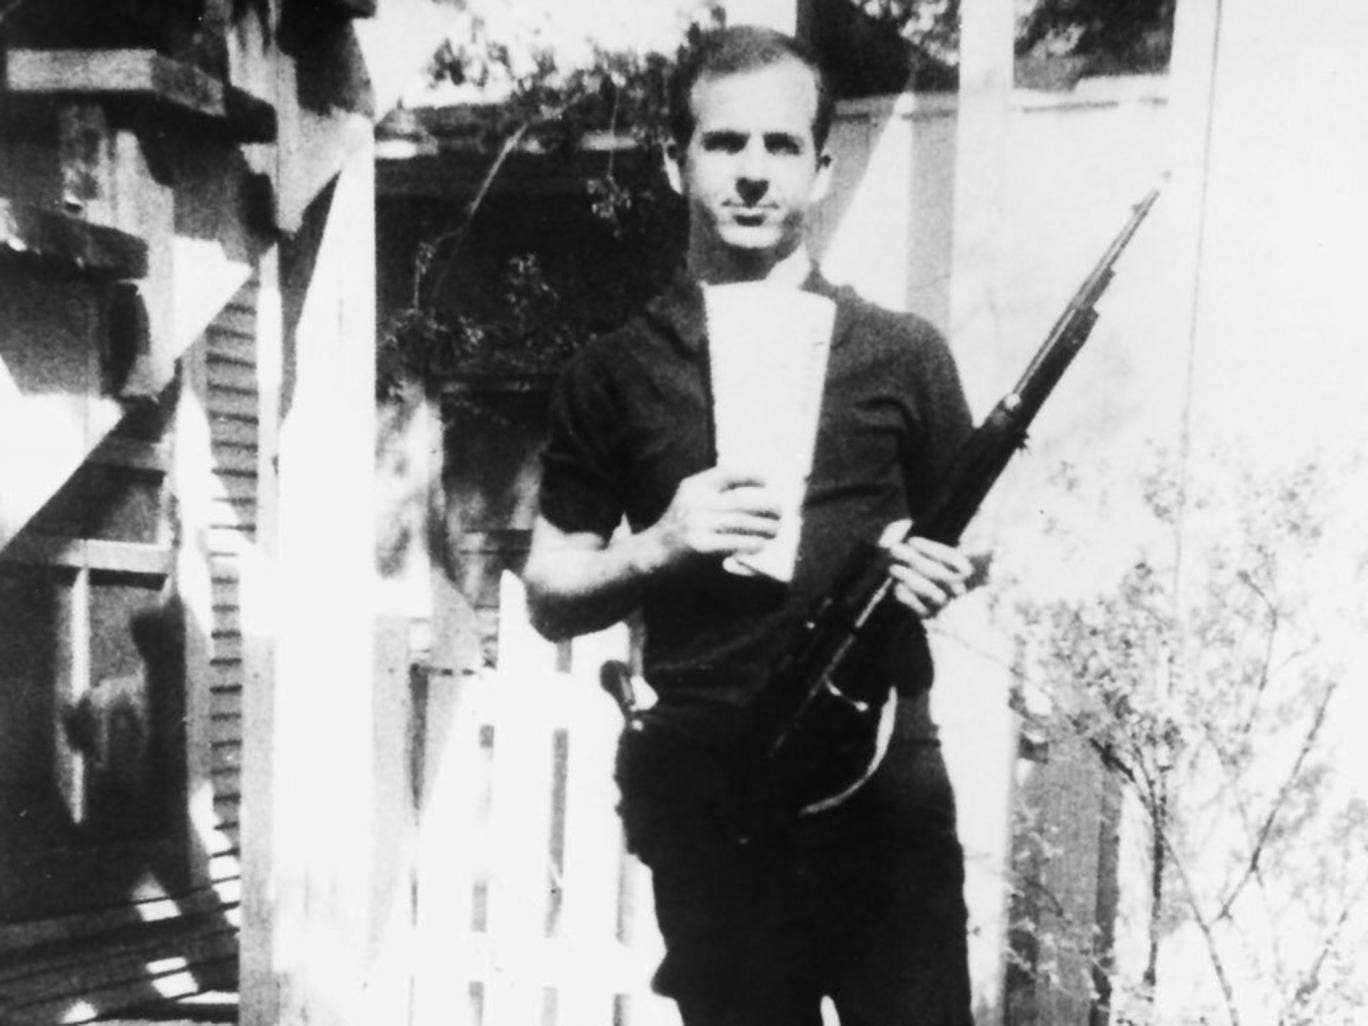 oswald didnt kill kennedy essay Editorial by john ziegler how did lee harvey oswald really kill off so easily by a lone loser like oswald also, for fans of kennedy his mystique is magnified.